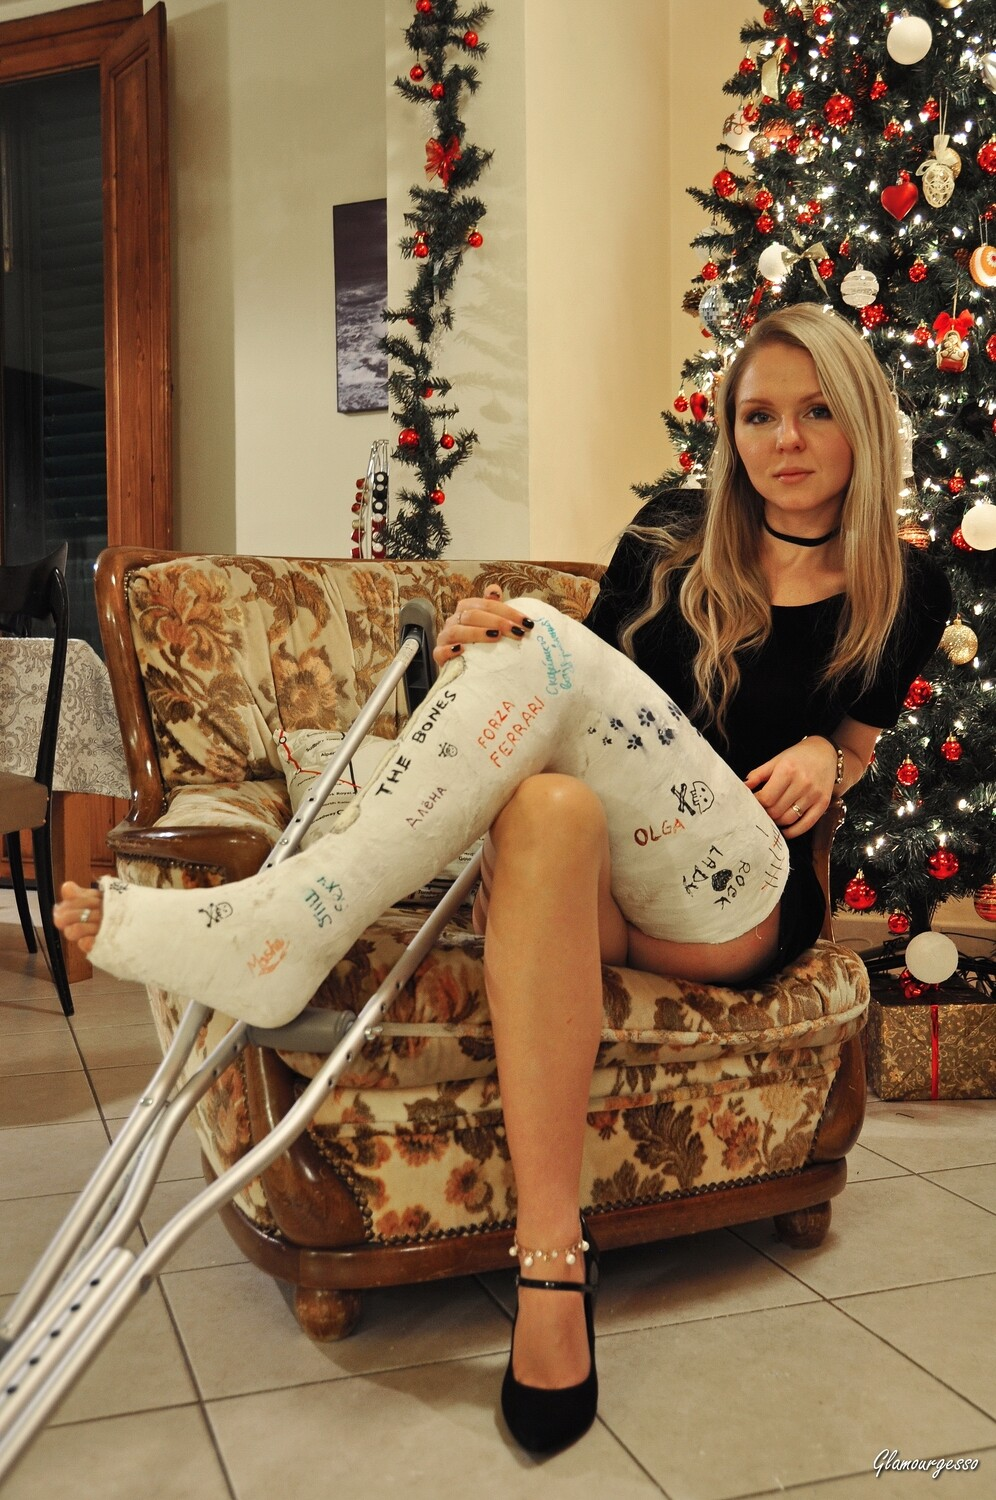 Ukrainian professional model Svitlana wears her severely ankle bent LLC, while you follow the scene by her boss at hostess agency point of view in an extremely long and sexy story with more than 2 hours of video!